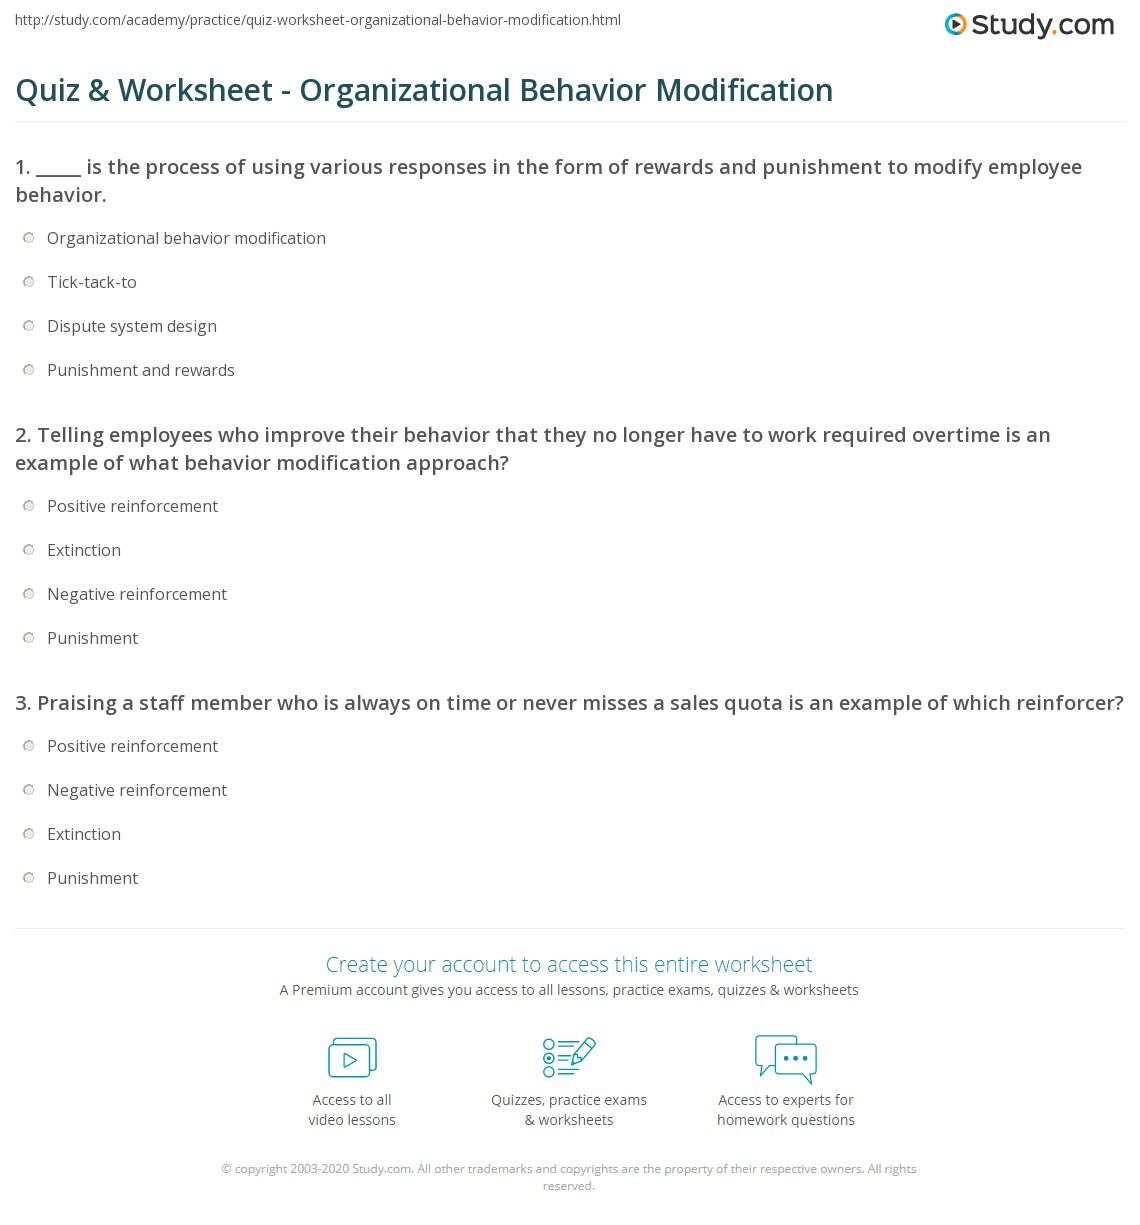 quiz worksheet organizational behavior modification com print organizational behavior modification definition example worksheet